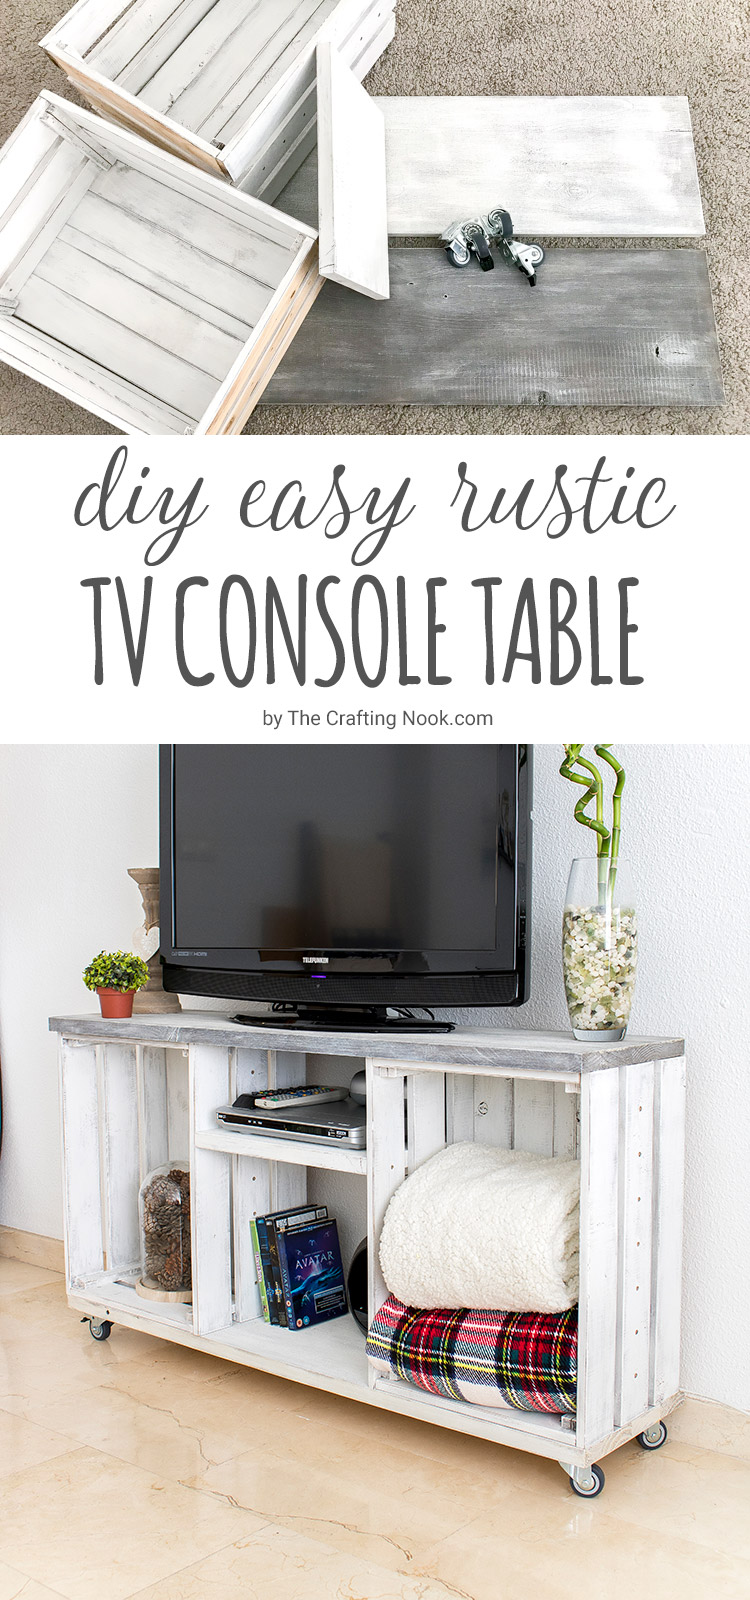 diy easy rustic tv console table the crafting nook. Black Bedroom Furniture Sets. Home Design Ideas